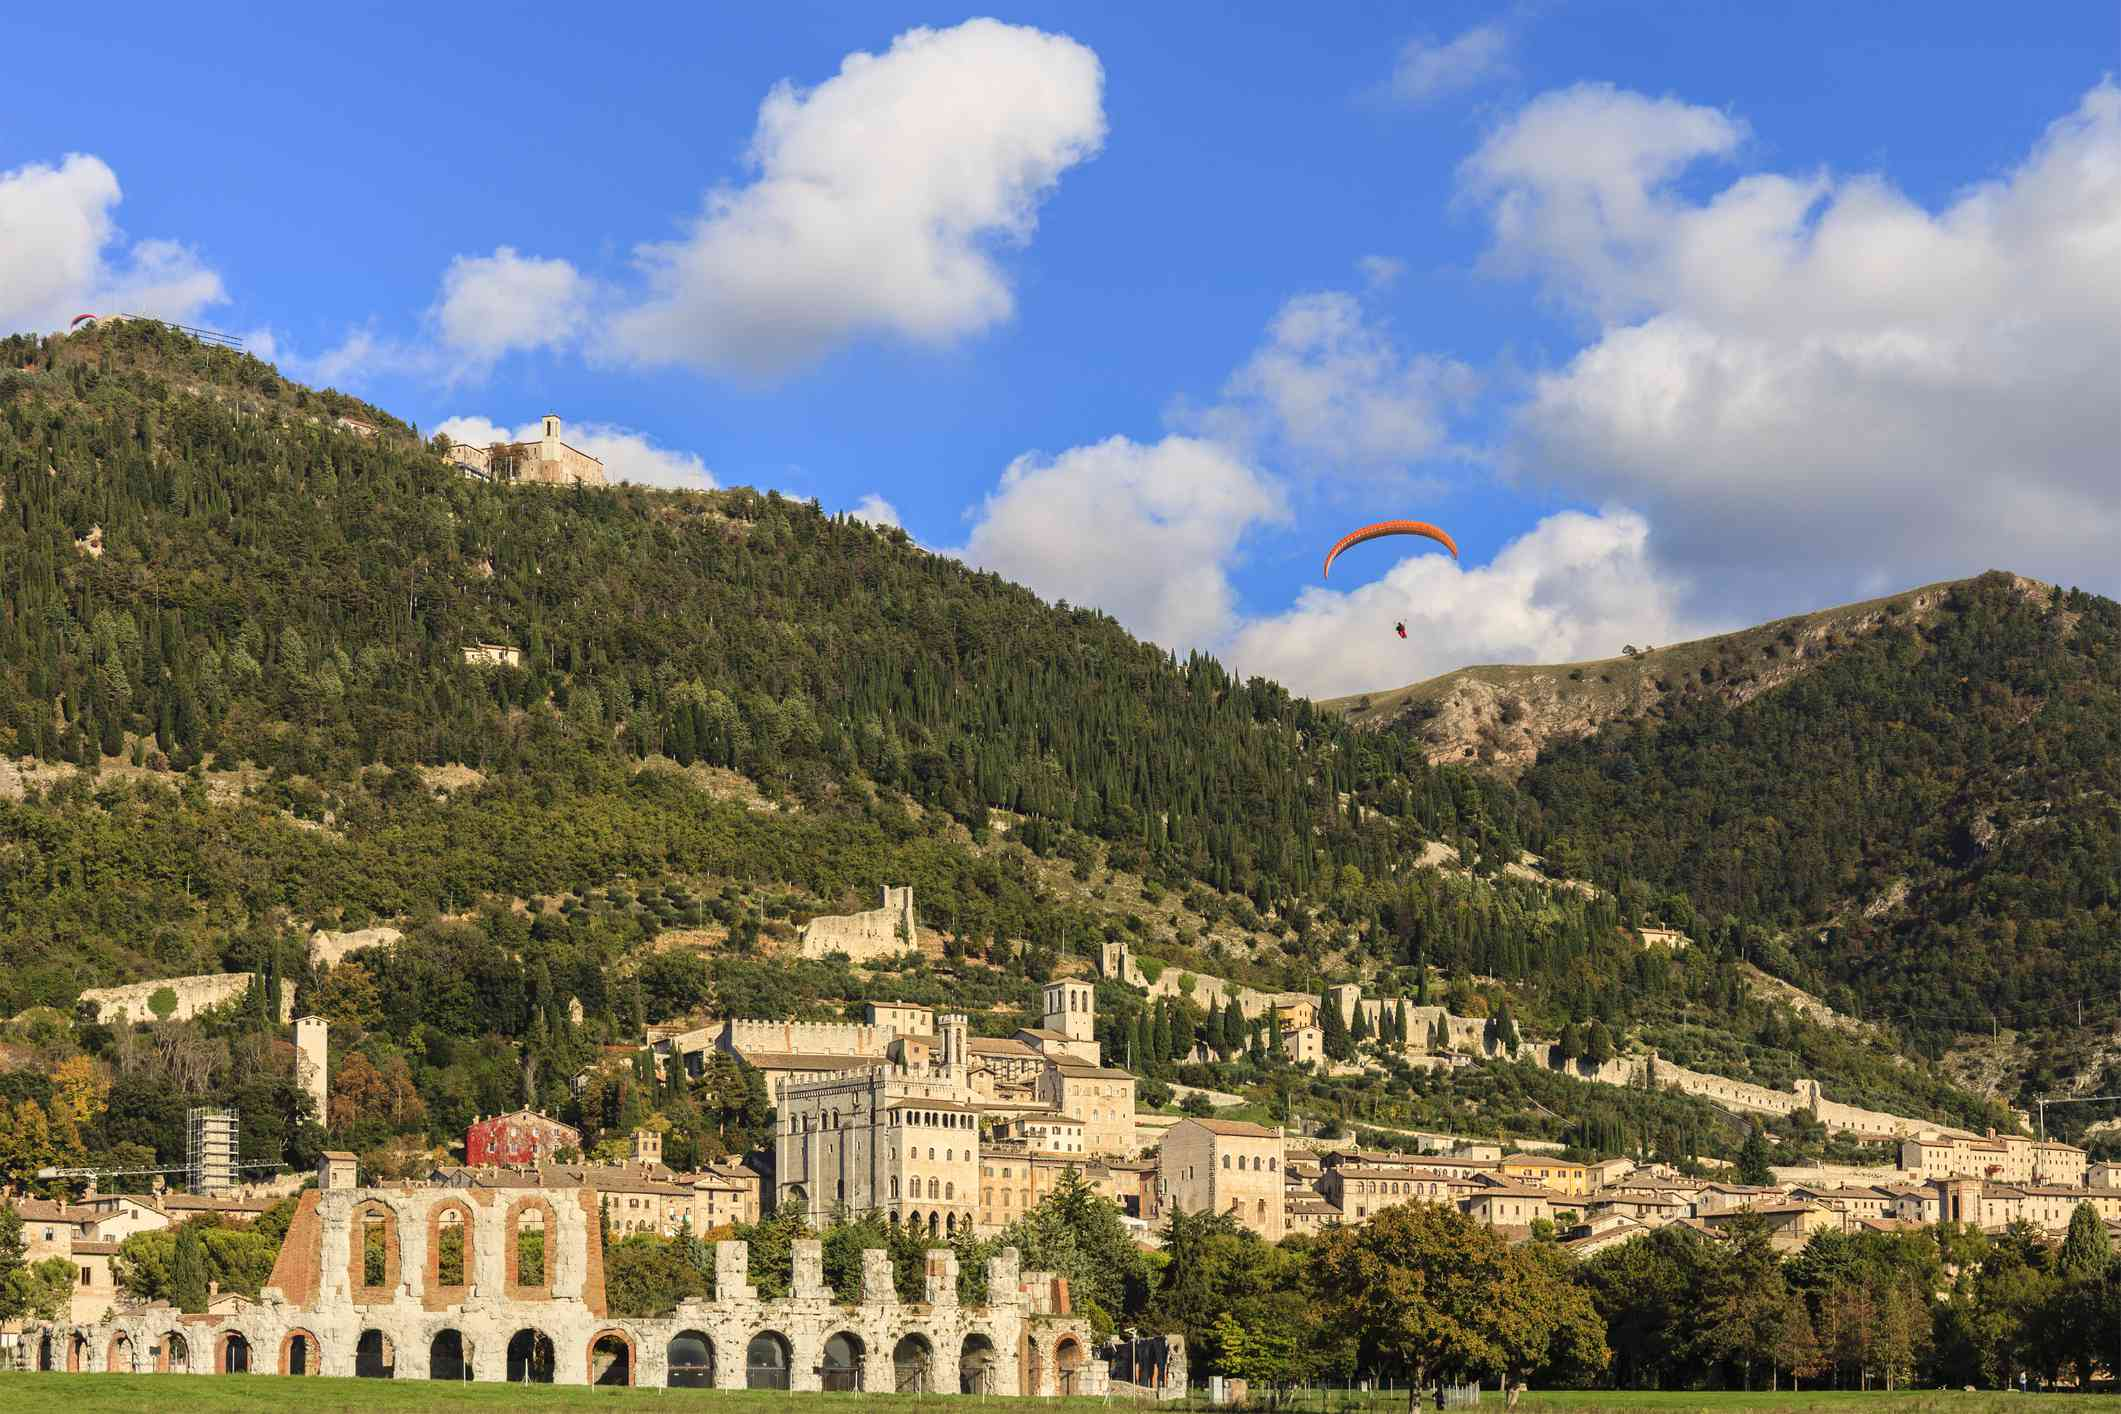 medieval town below a mountain and paraglider in the sky